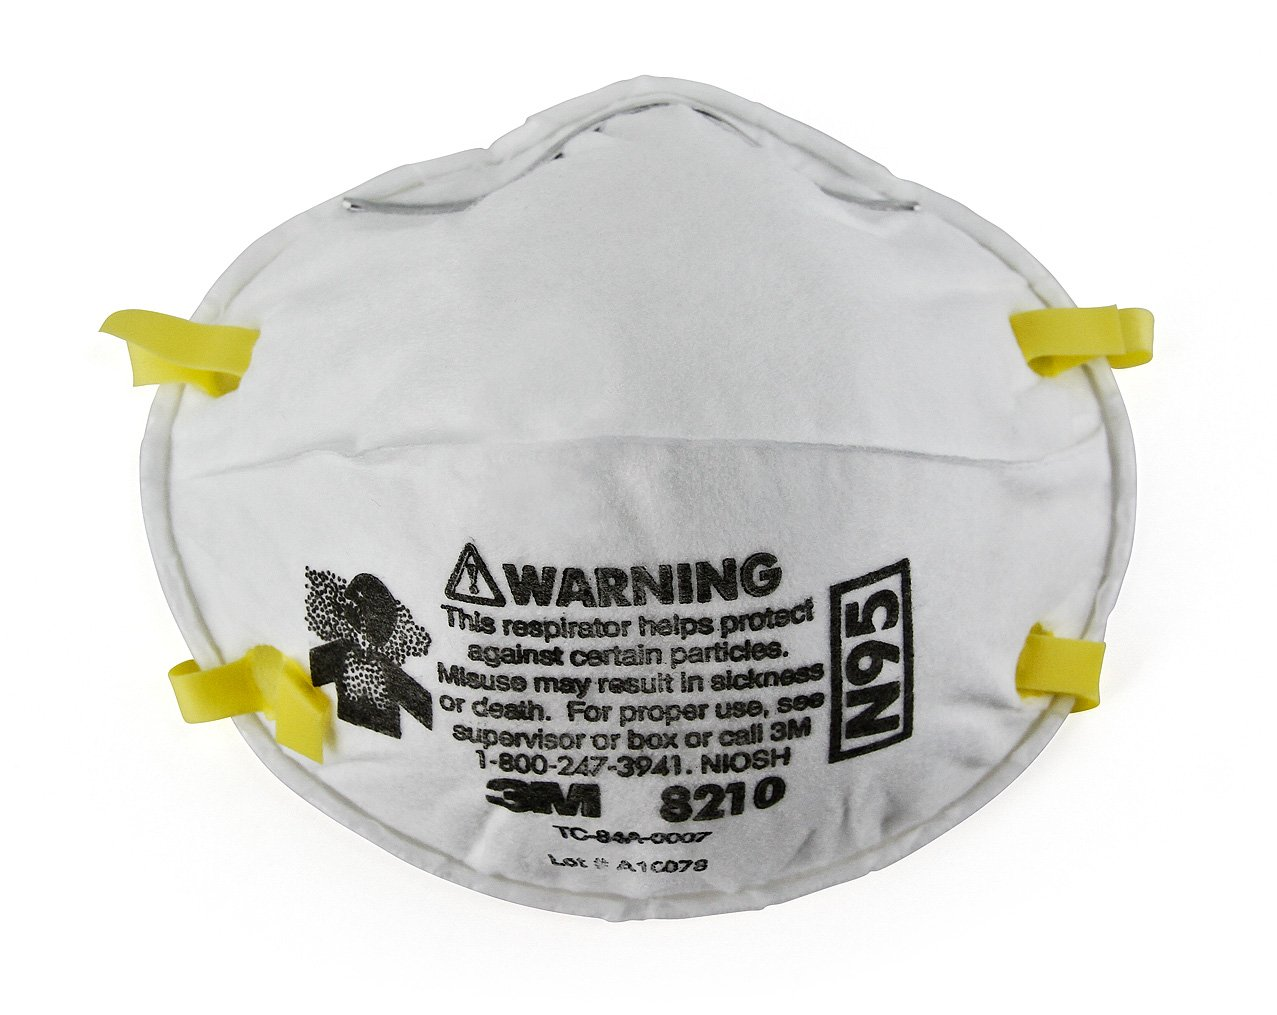 3M Particulate Respirator 8210, N95 (Pack of 20) by 3M Personal Protective Equipment